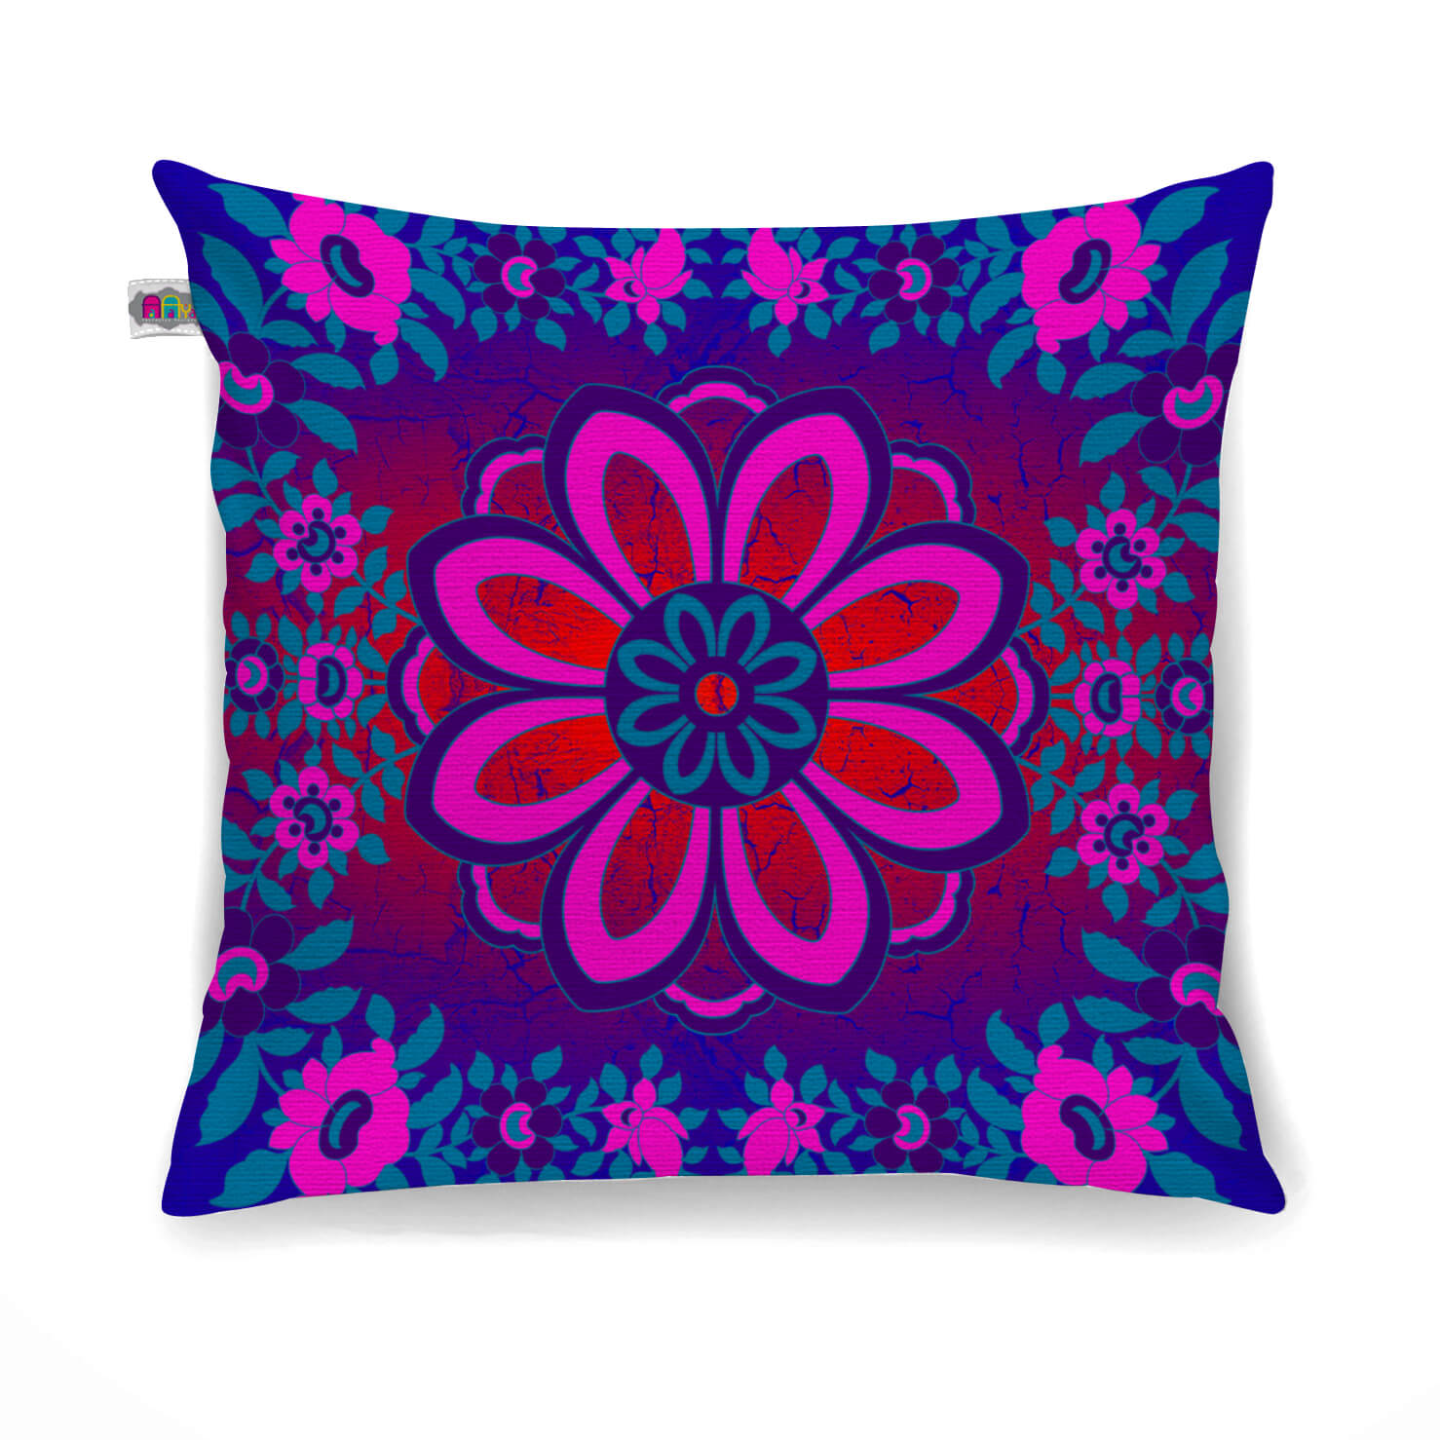 Sparkling Flower Motif Cushion Cover Set of 2